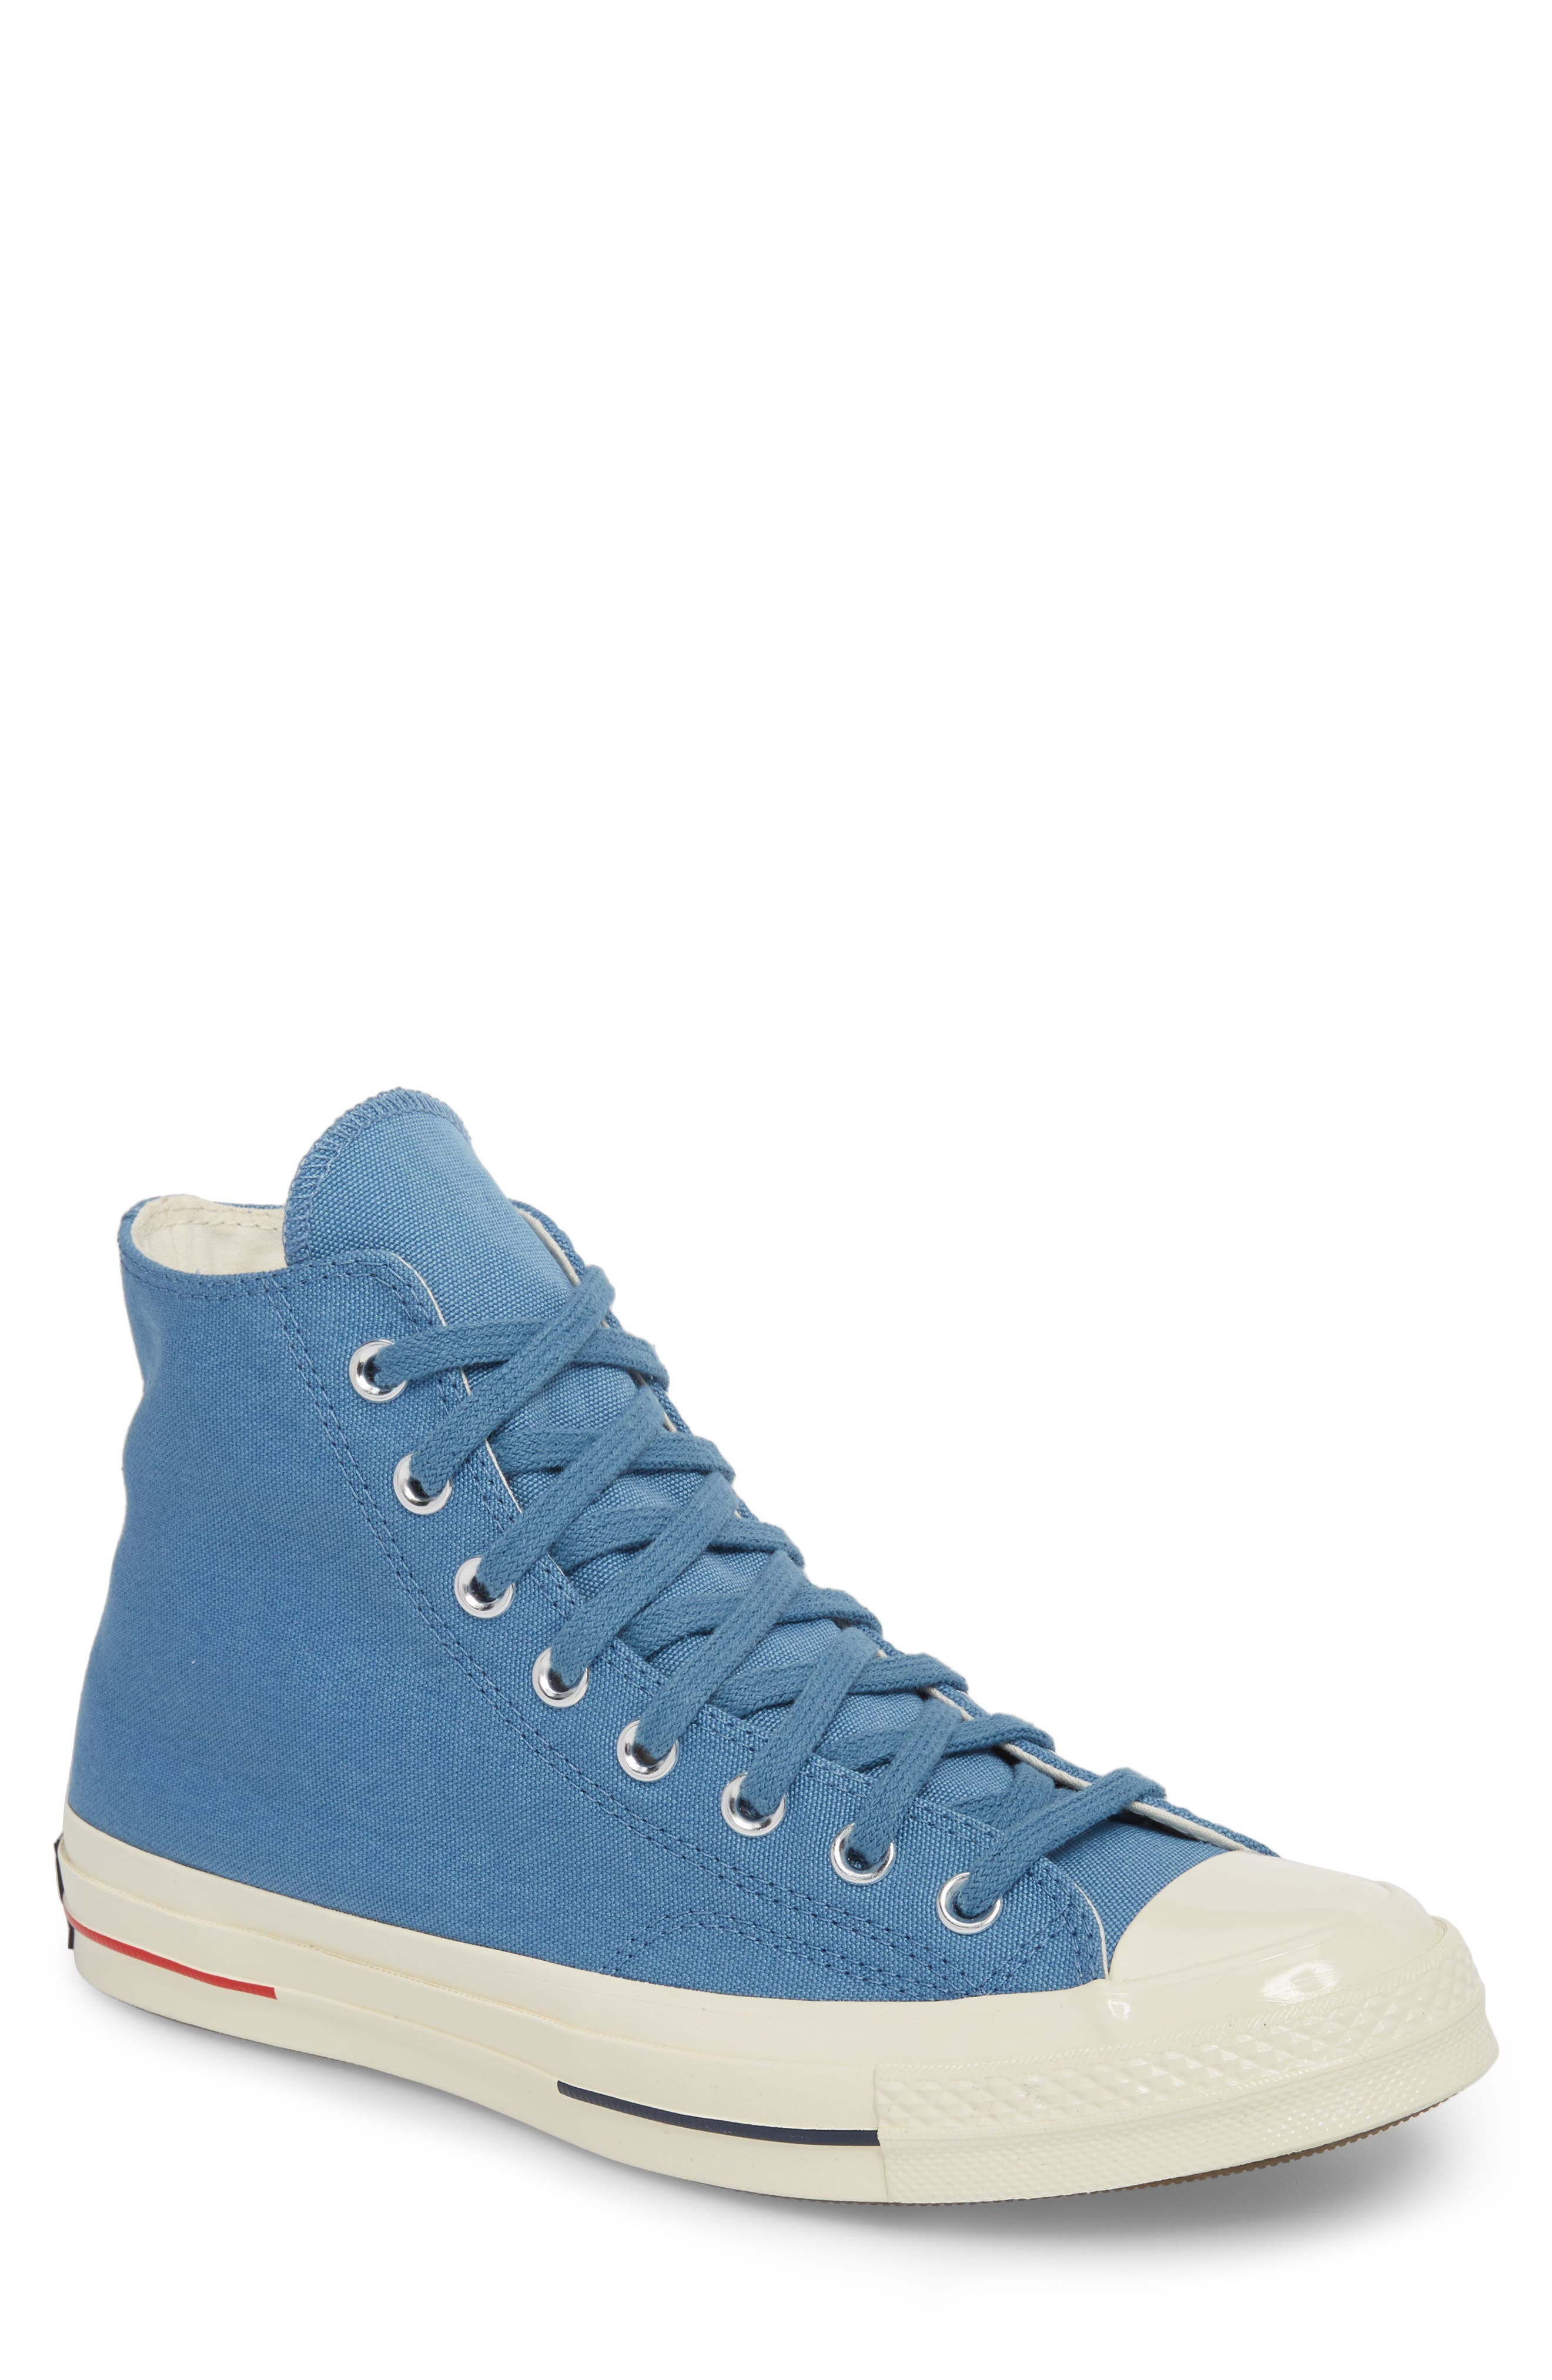 Chuck Taylor<sup>®</sup> All Star<sup>®</sup> '70s Heritage High Top Sneaker,                             Main thumbnail 1, color,                             400